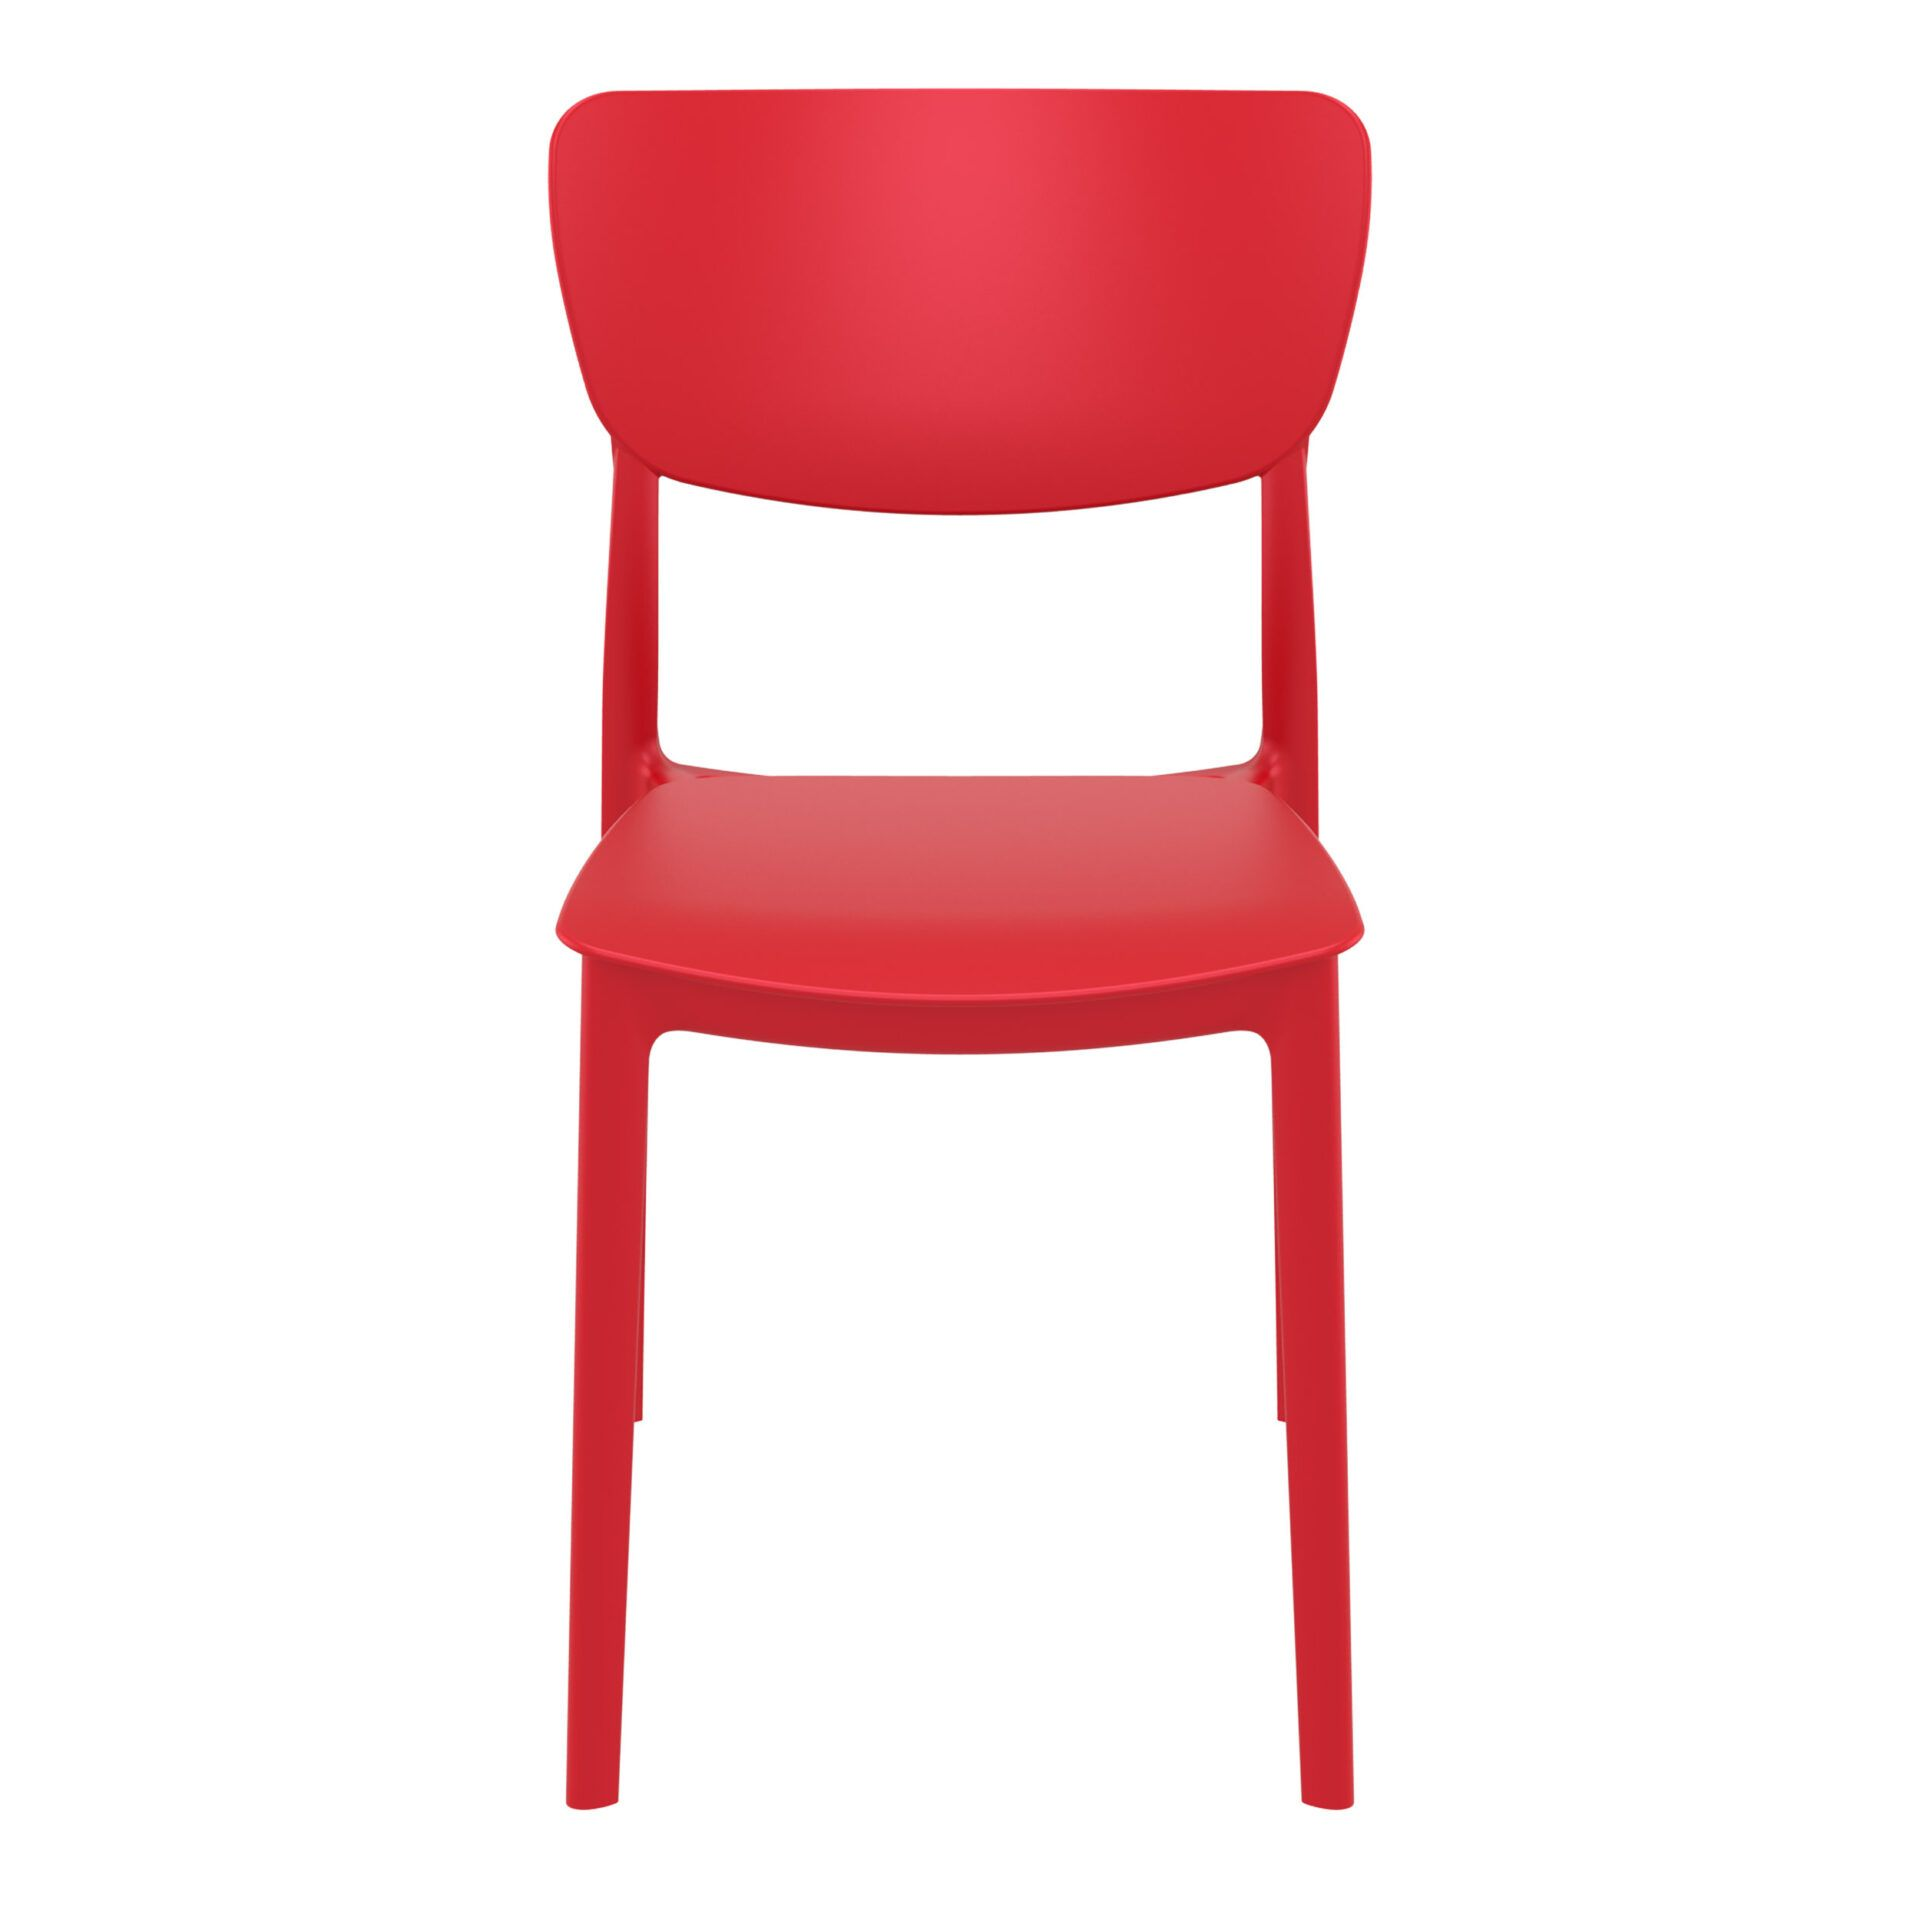 polypropylene outdoor dining monna chair red front